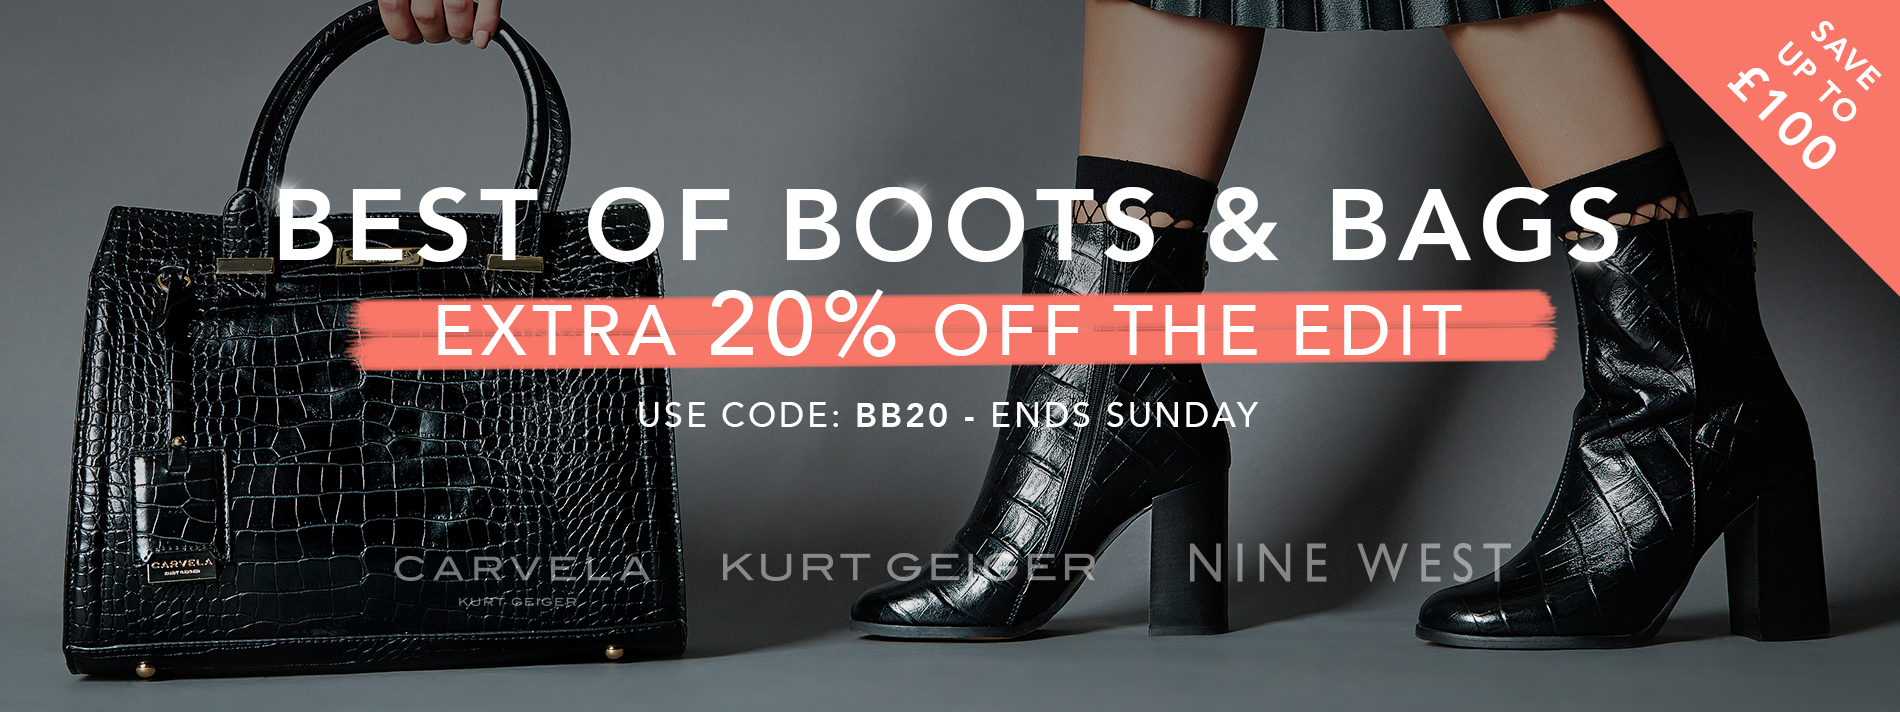 THE BEST OF BOOTS & BAGS SAVE UP TO £100 + EXTRA 20% OFF THE EDIT USE CODE: BB20